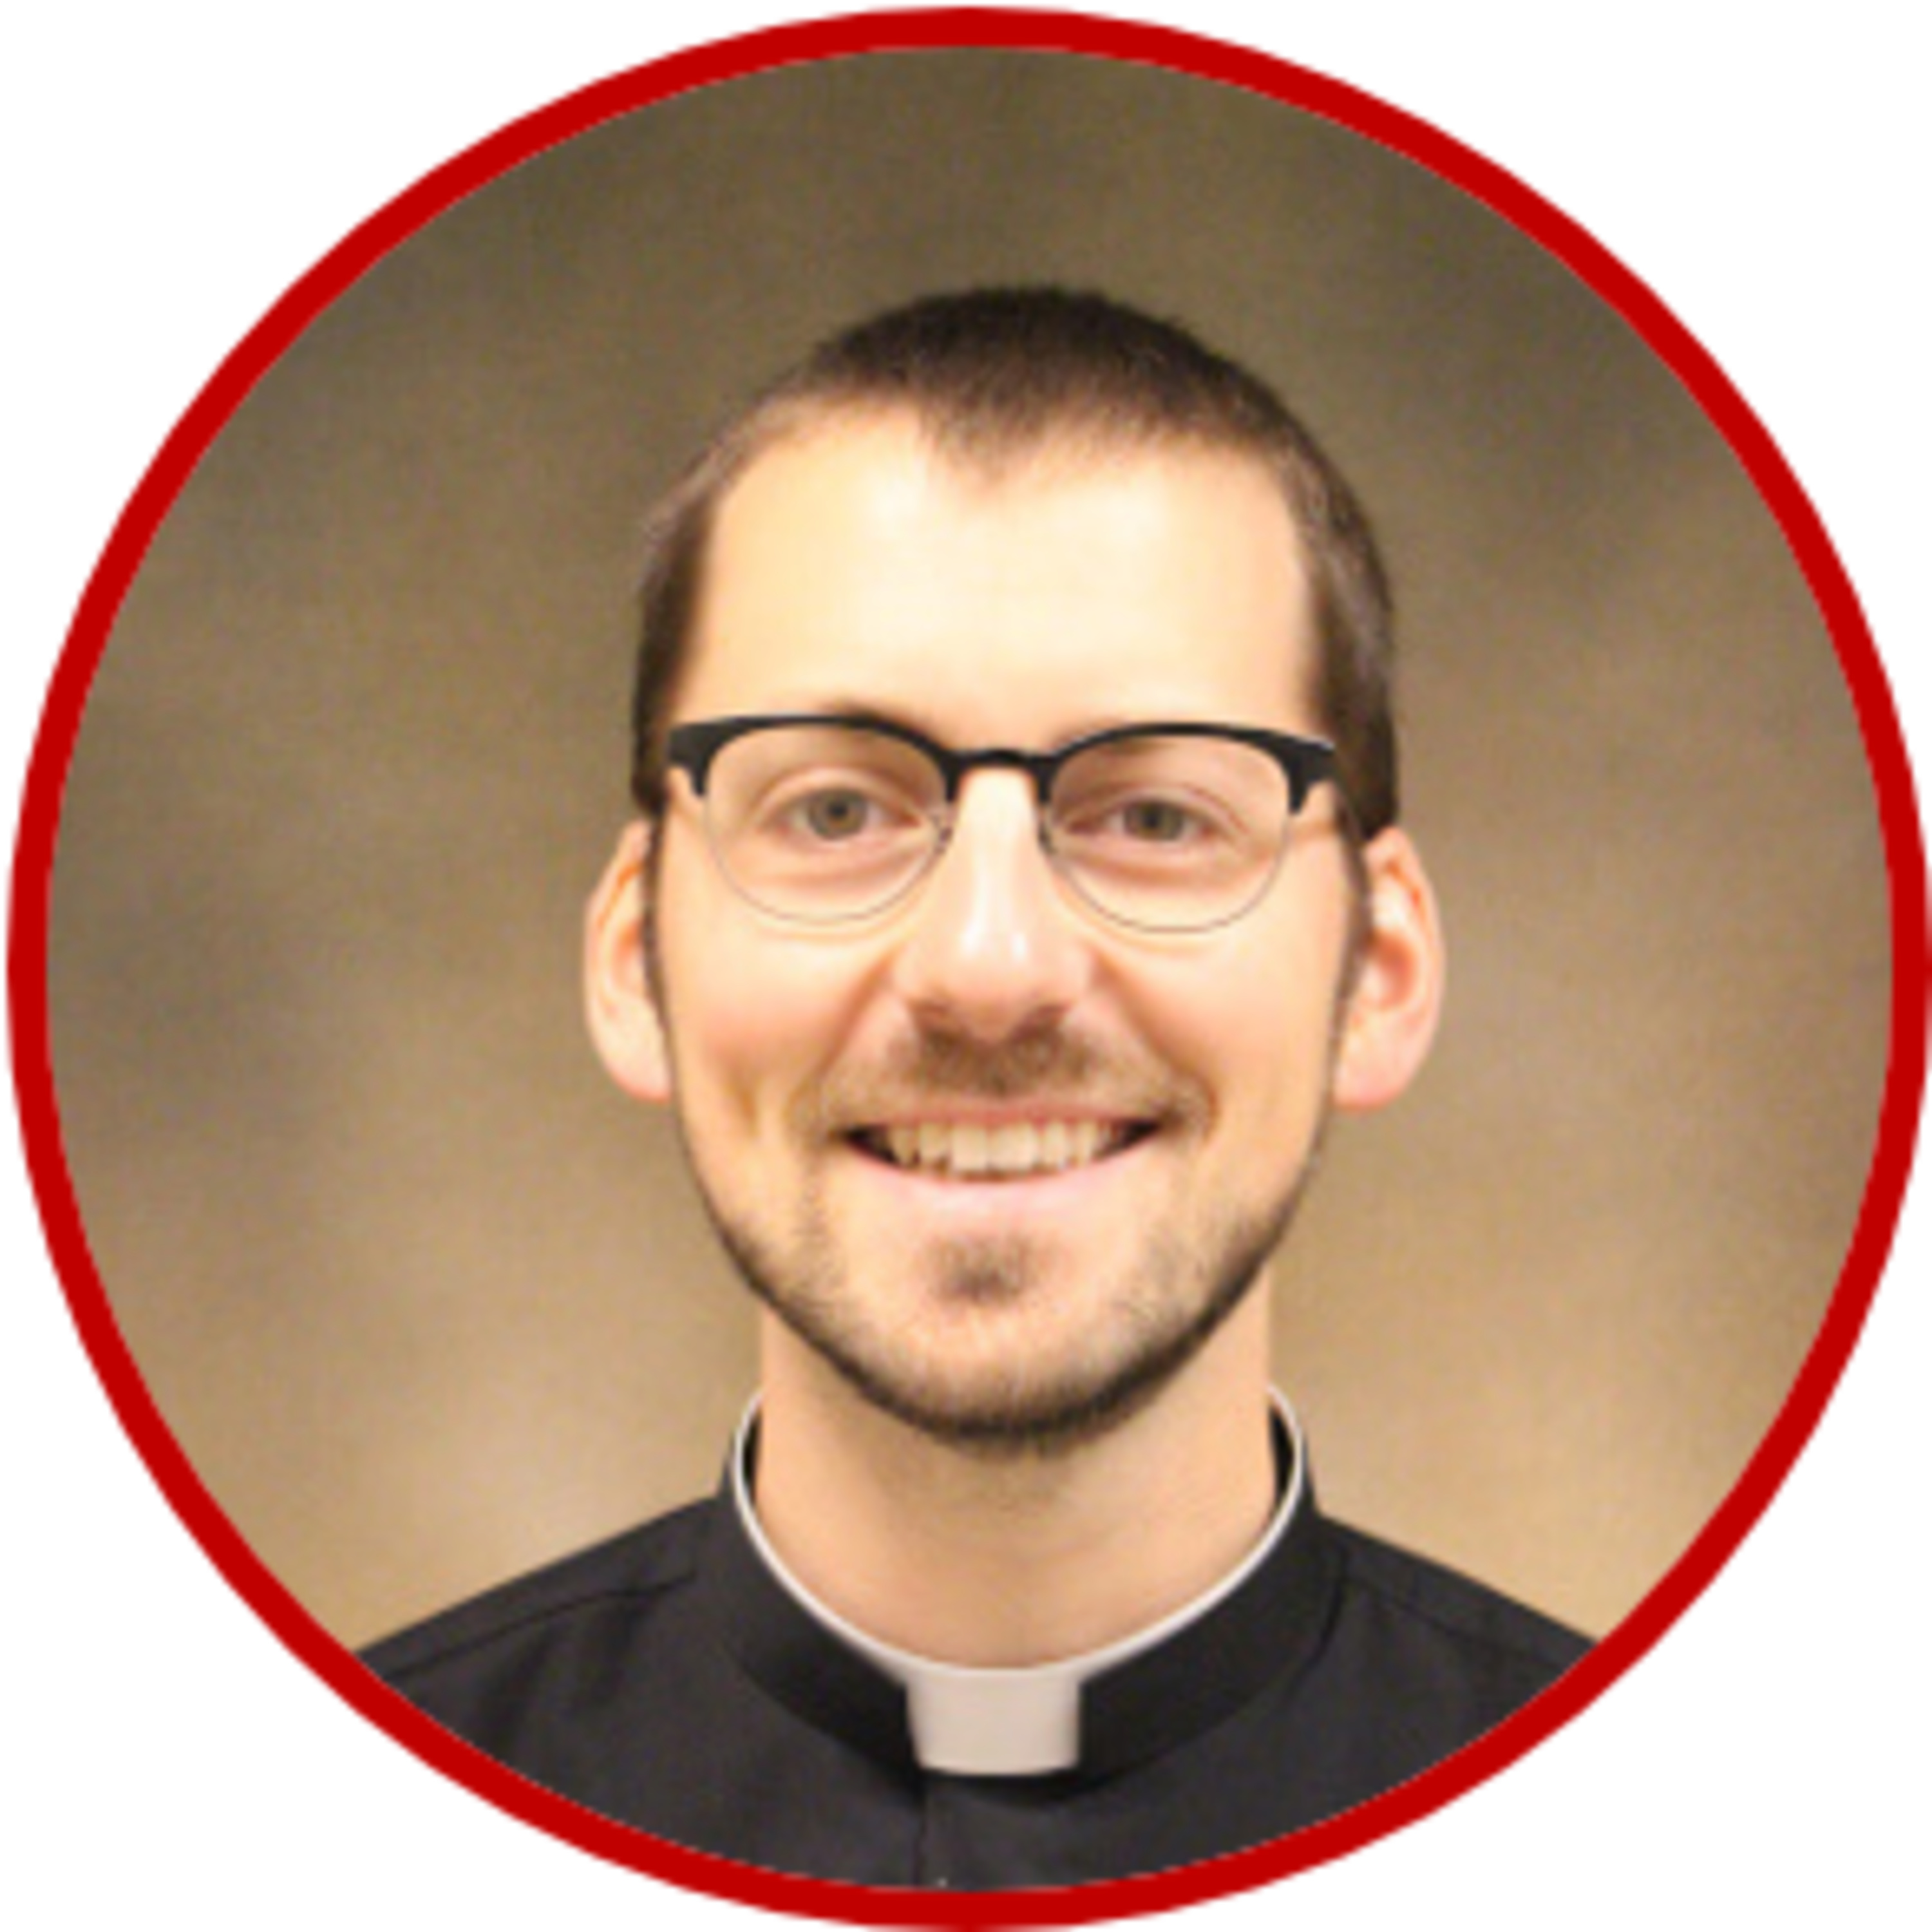 11th Sunday in Ordinary Time: Fr. Christian DeCarlo